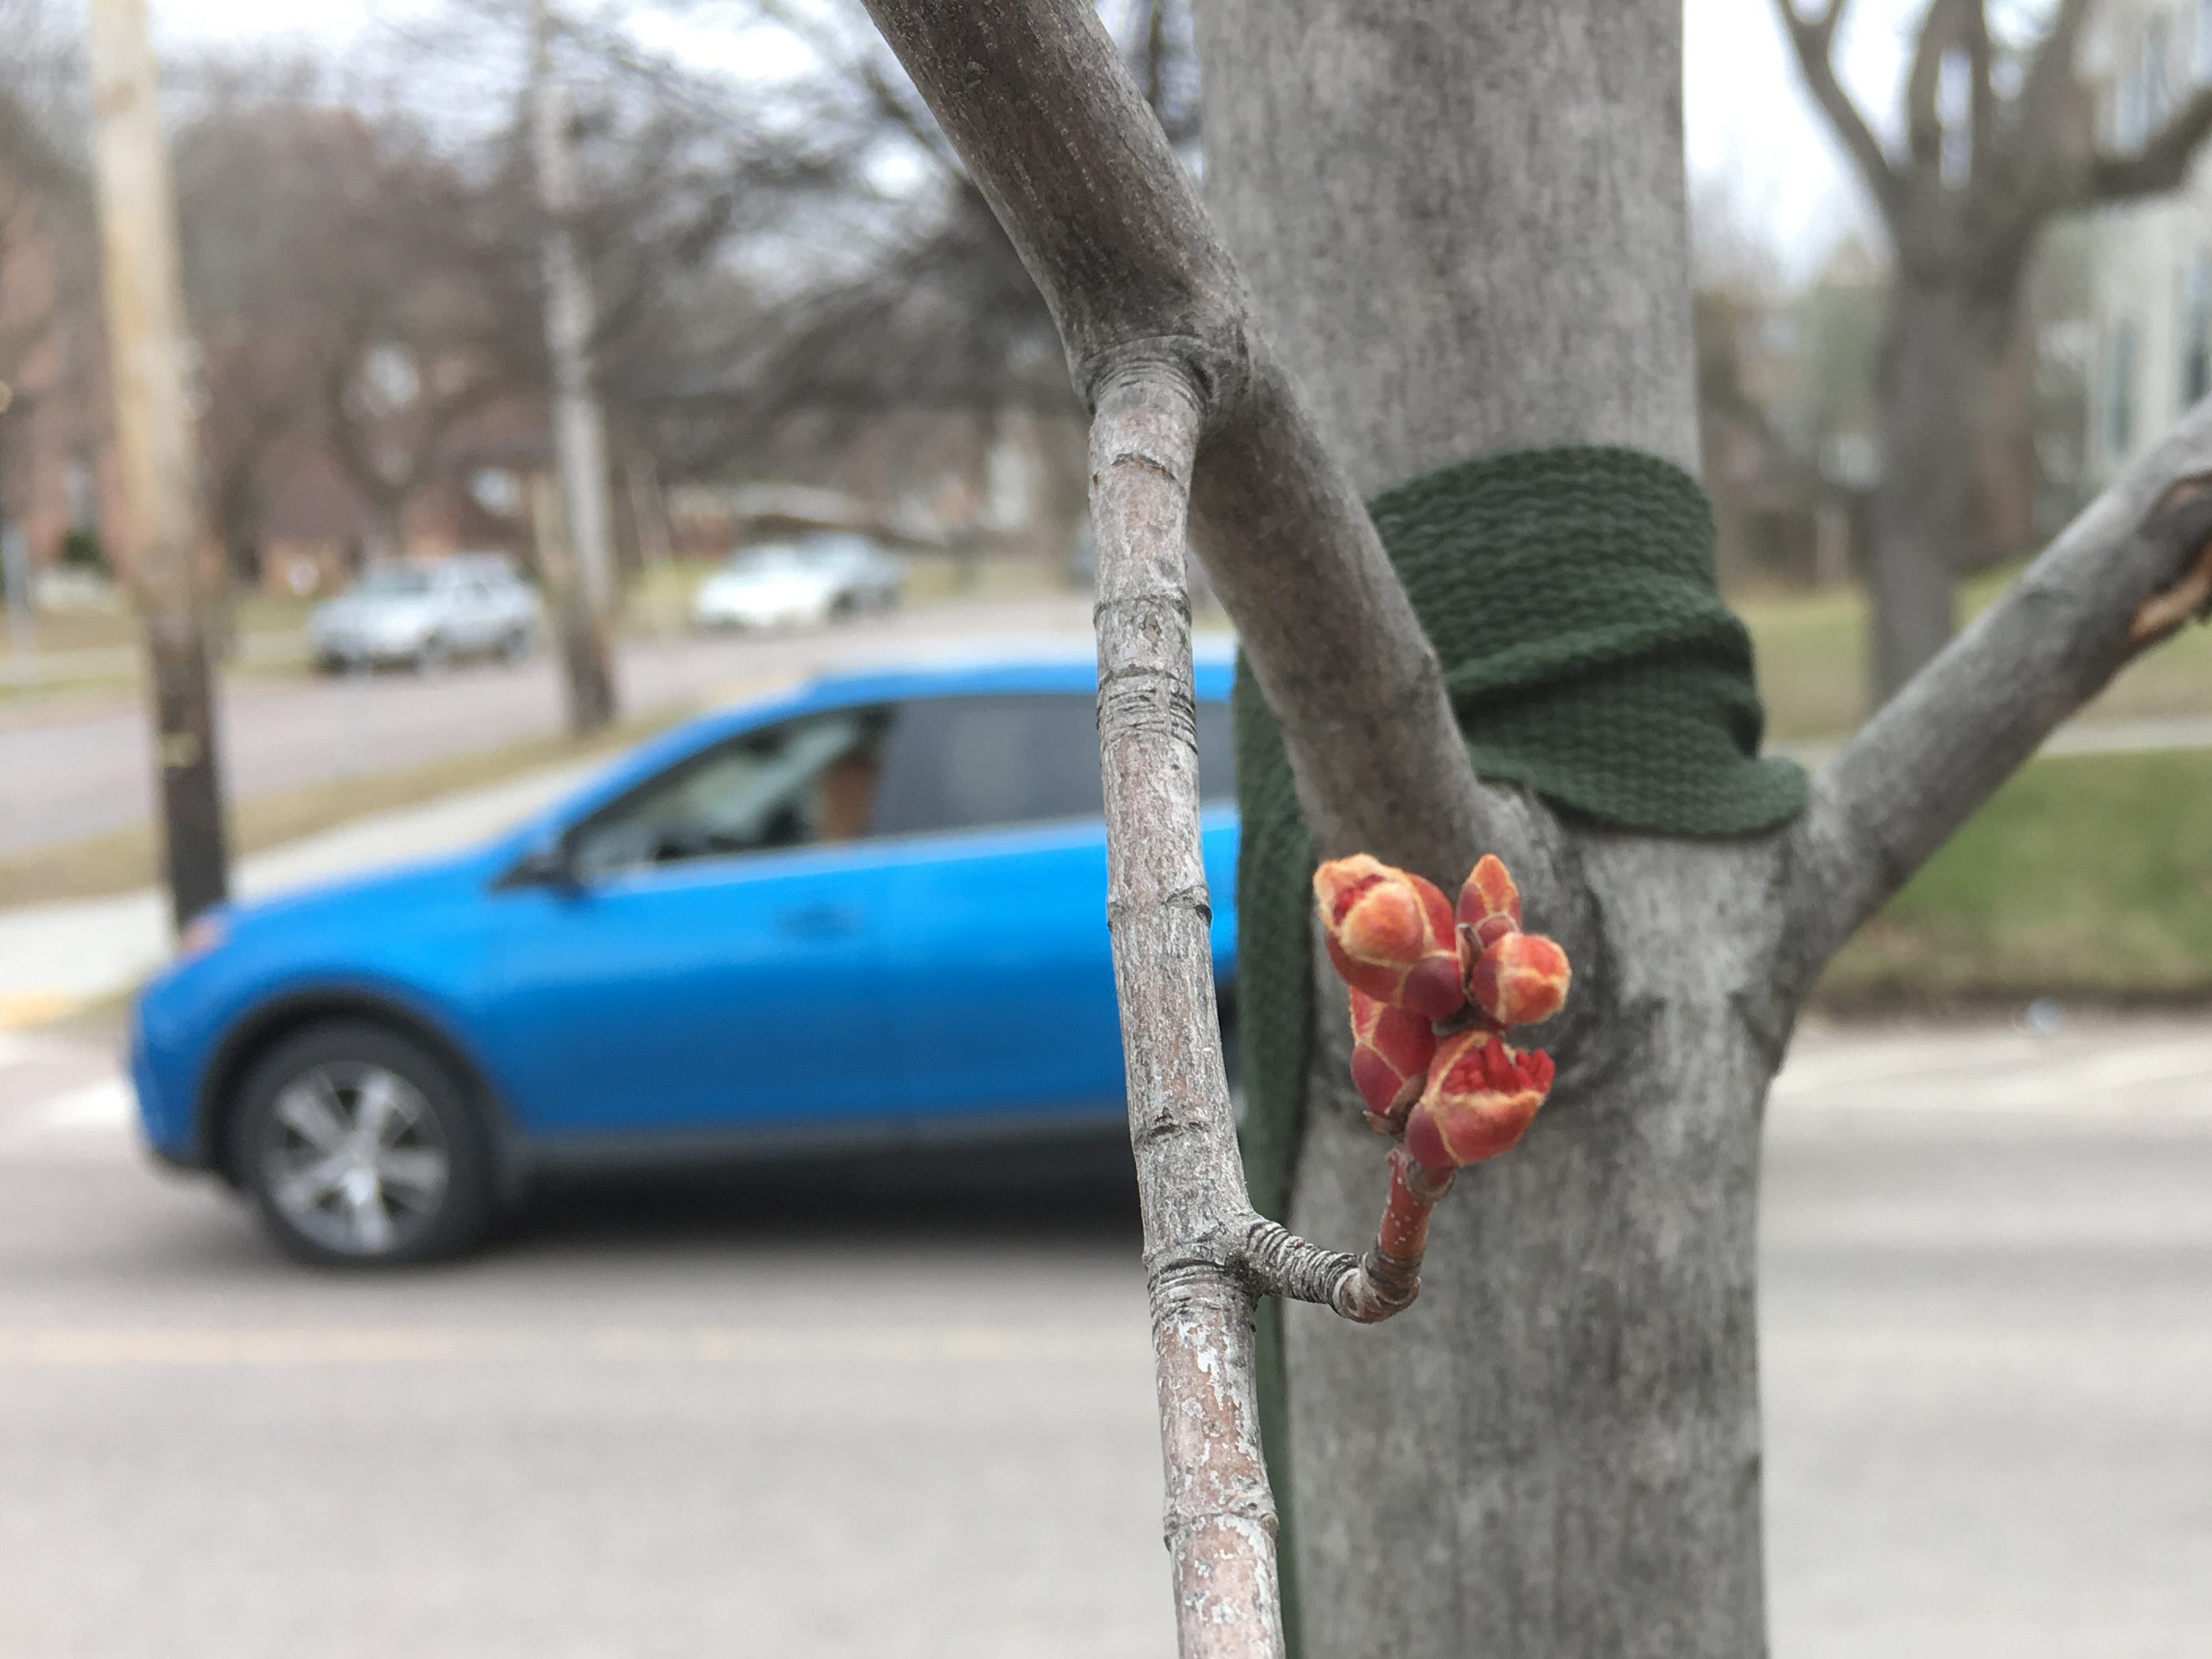 A sapling's bud adds color at the intersection of Willard and College streets in Burlington on Sunday, April 14, 2019.